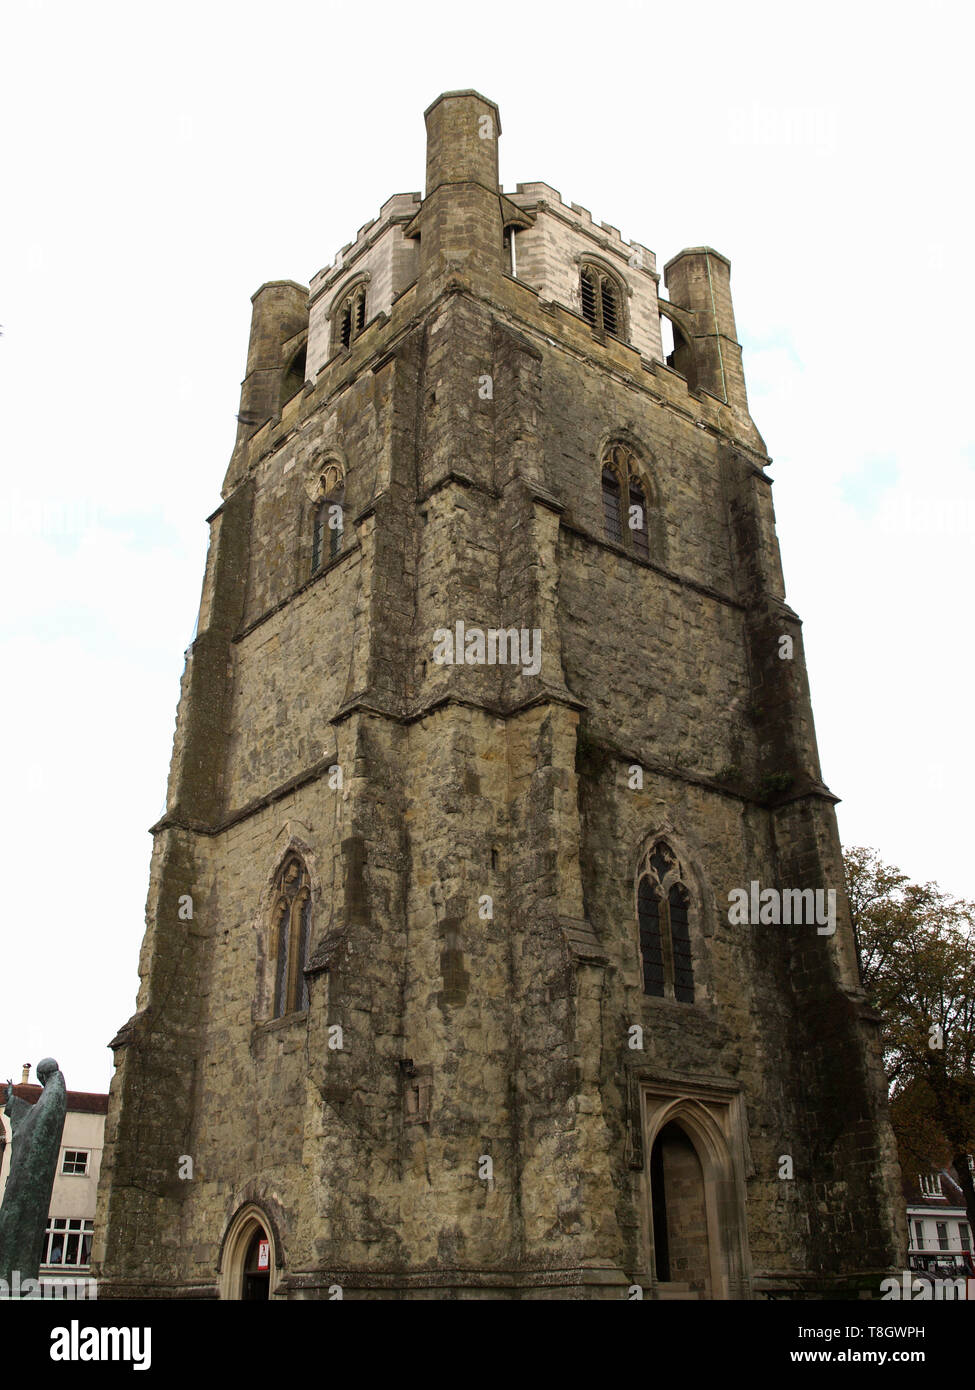 The Bell Tower at Chichester Cathedral, West Sussex, England, UK - Stock Image